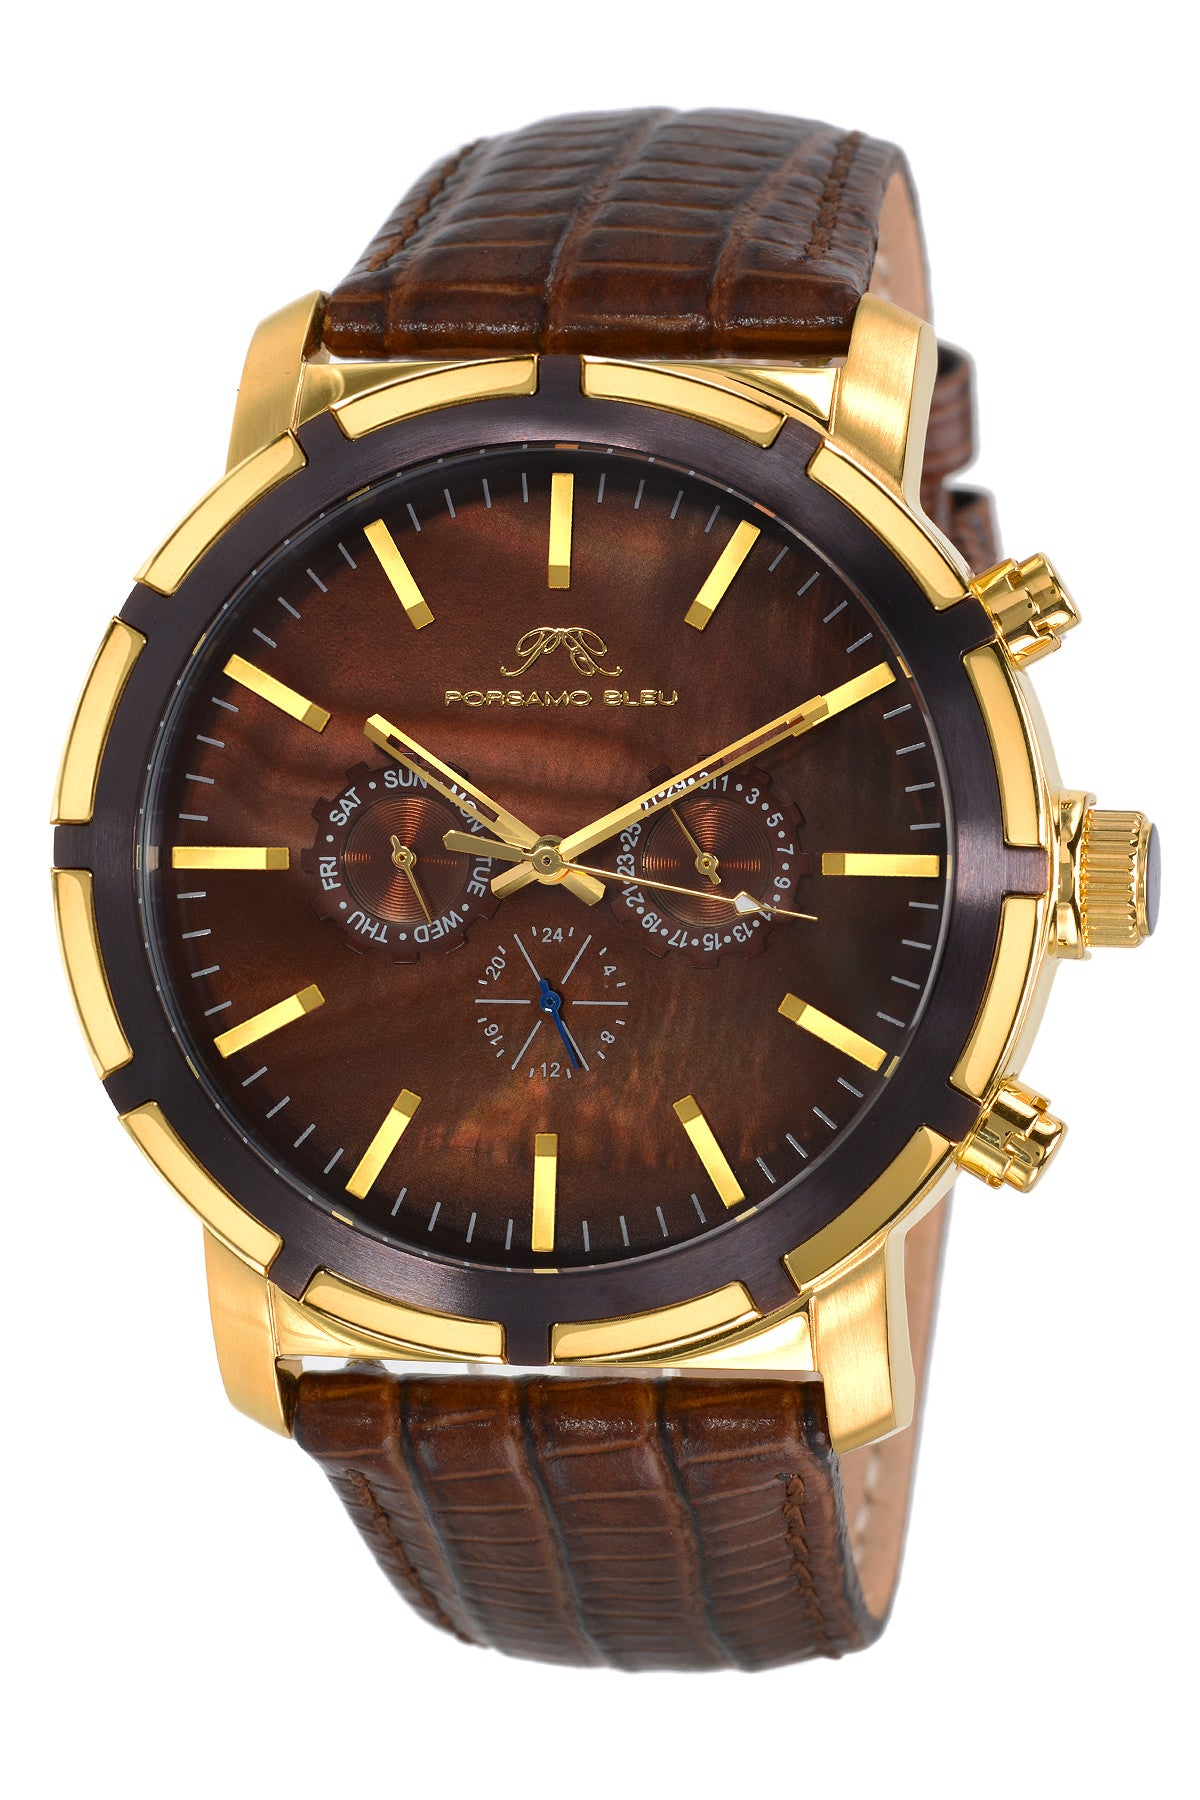 Porsamo Bleu NYC luxury men's watch, genuine leather band, gold, brown 051CNYL